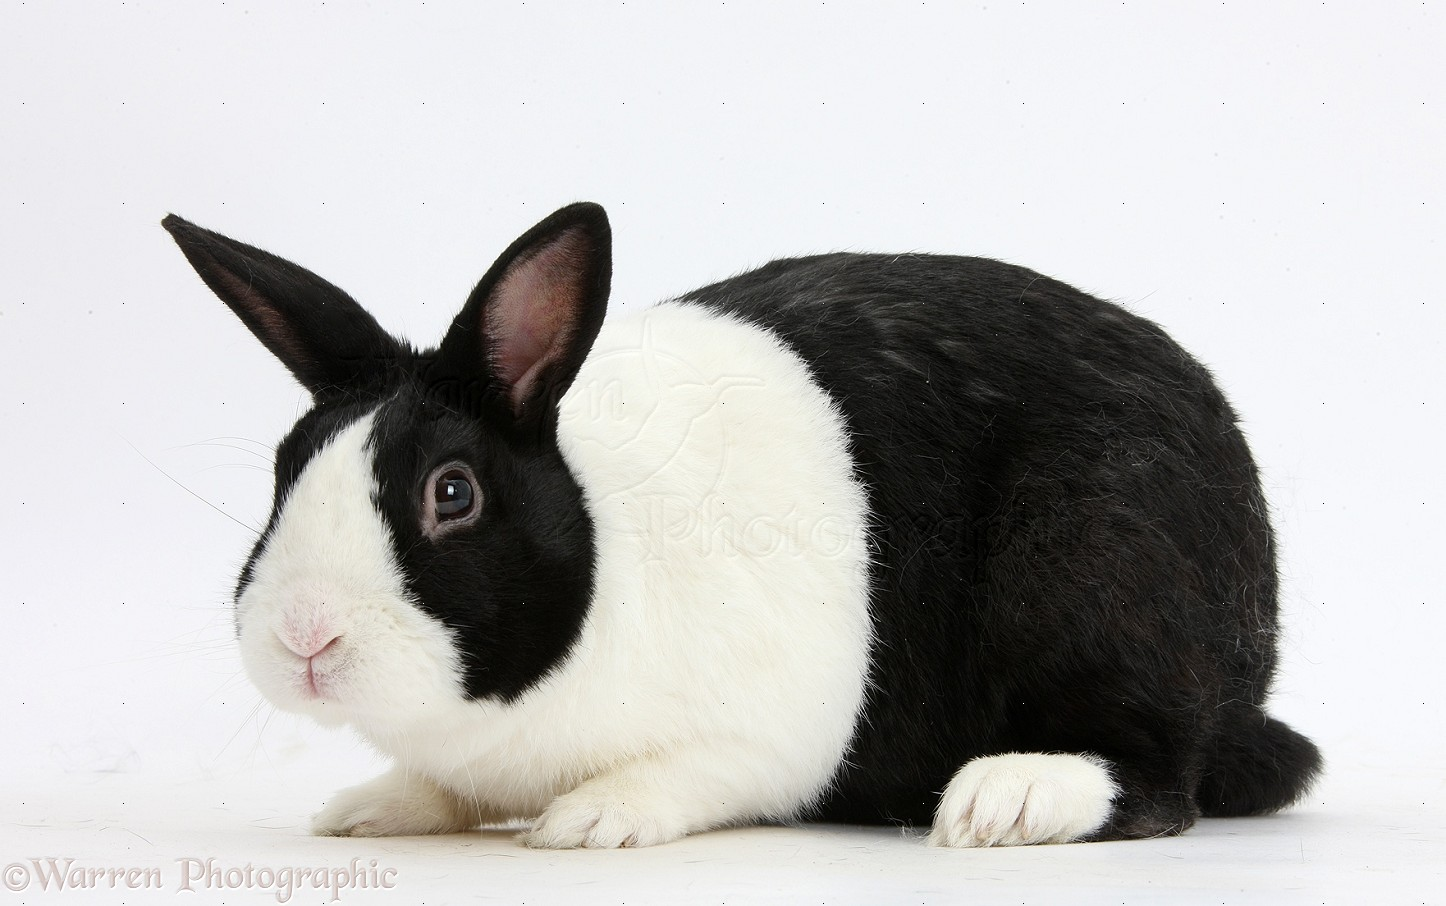 Pictures of black rabbits